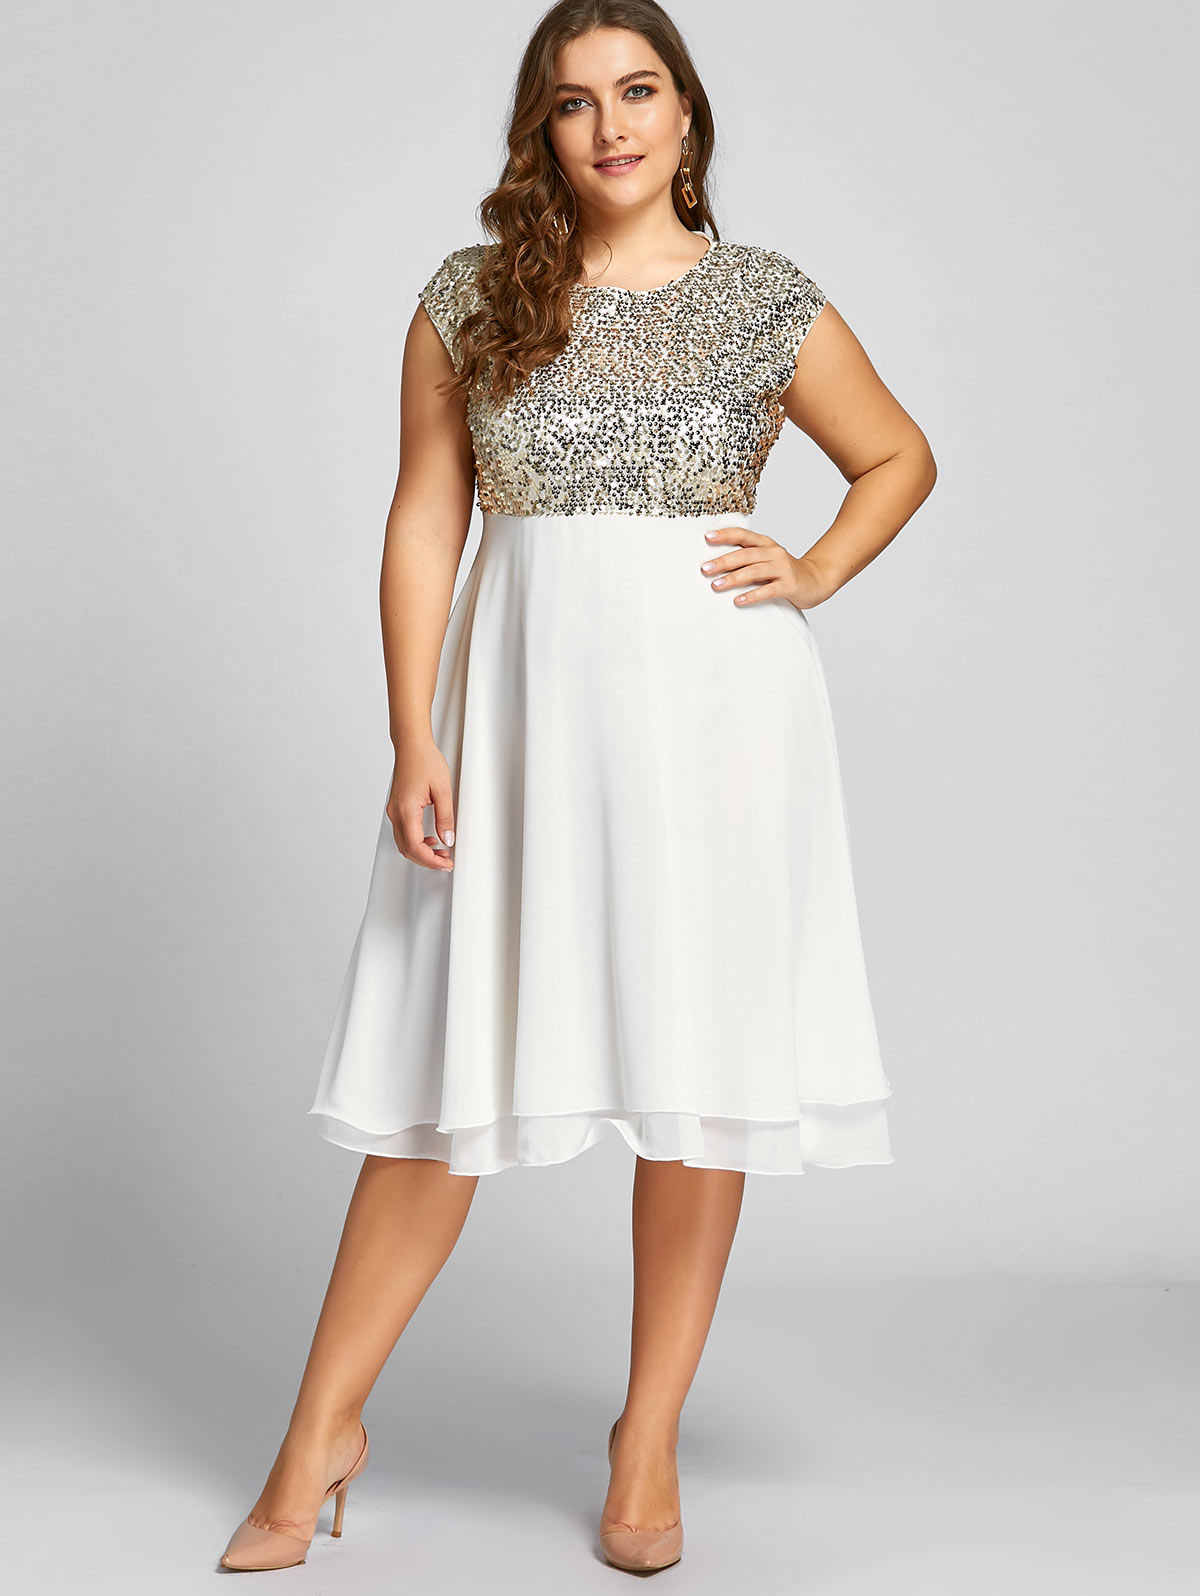 d9201e9b114ff Wipalo Plus Size 5XL Sequin Sparkly Dress Women Flounce Robe Female Short  Sleeves Party Dress Ball Gown Knee-Length Vestidos